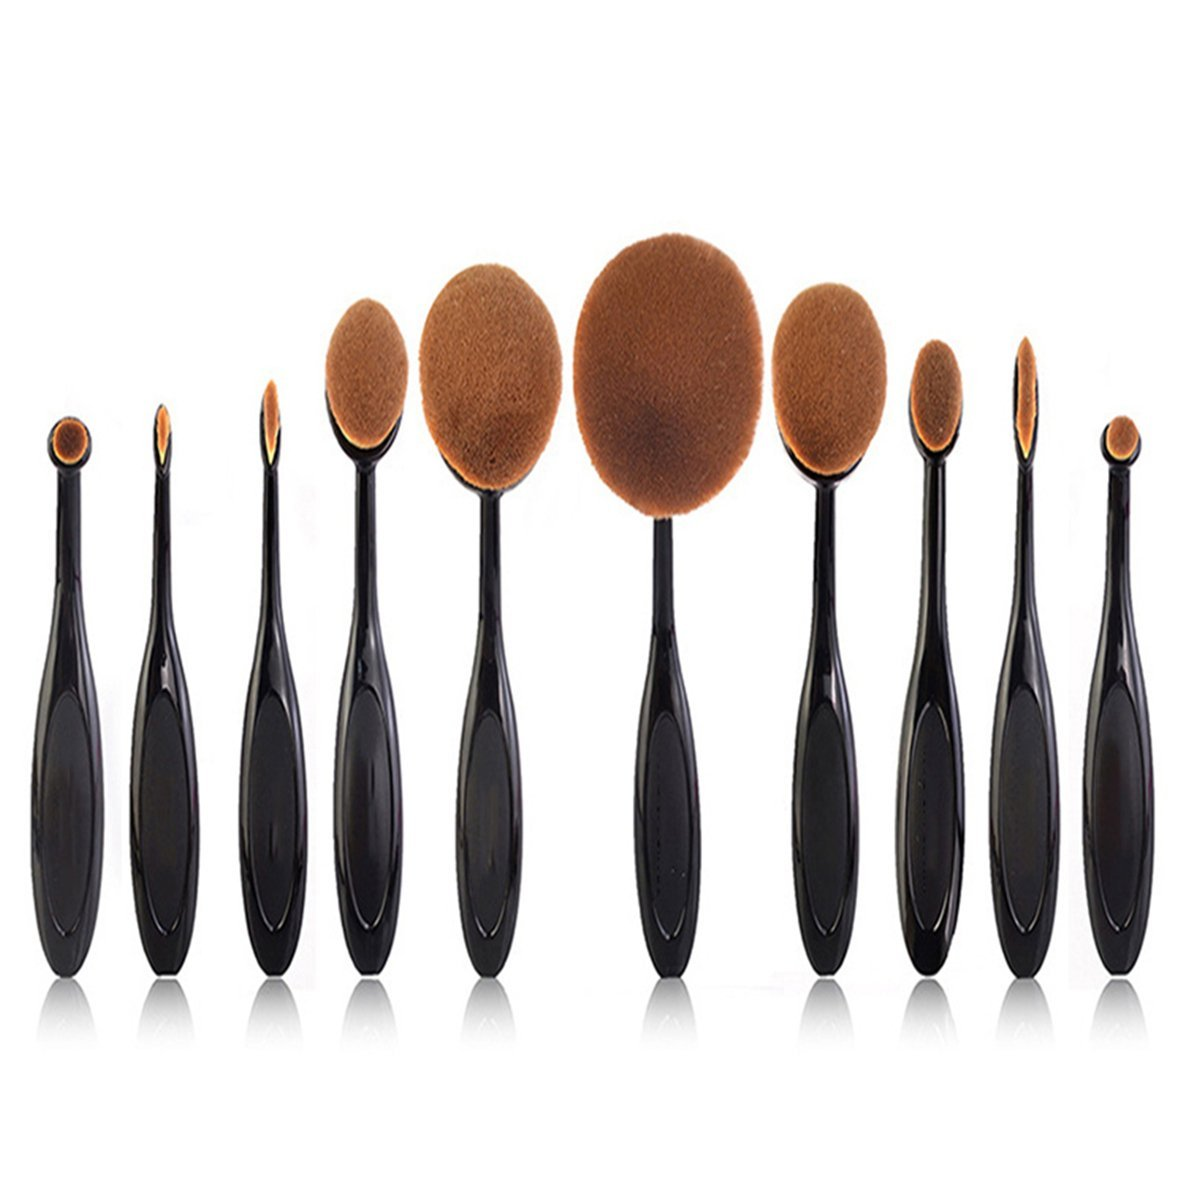 Minidog 10 Pcs Professional Oval Toothbrush Makeup Brush Set with Box , Different Shapes Brush Fit Application of Makeup or Face Painting - Black